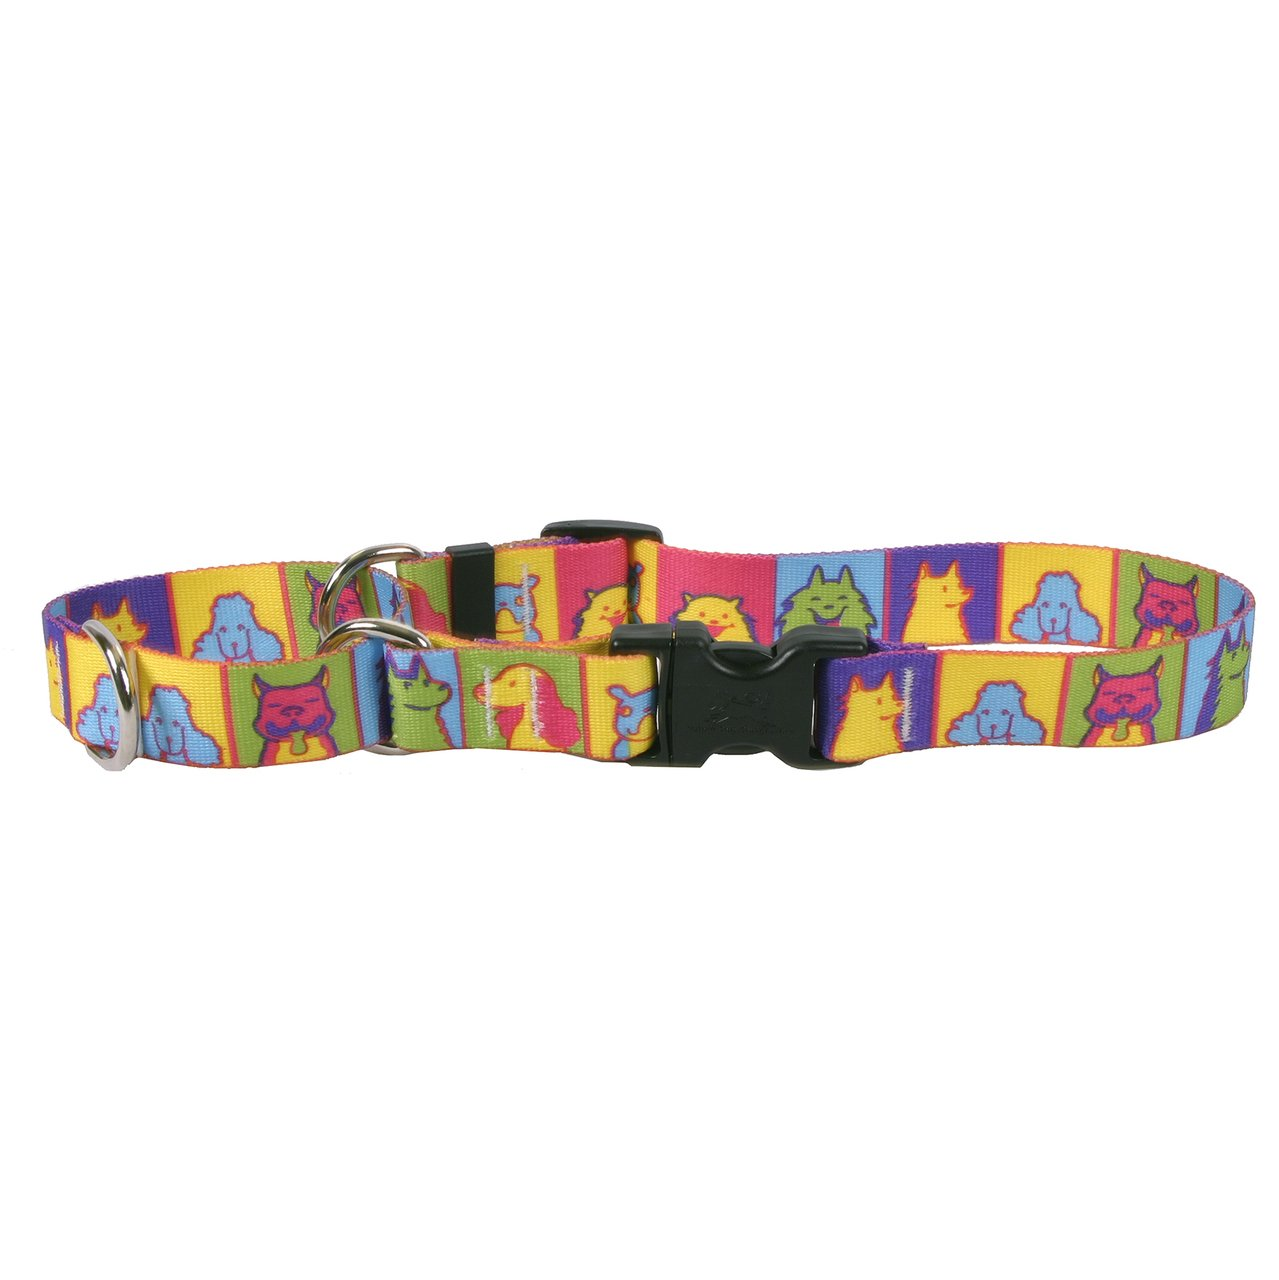 Extra Small 10\ Yellow Dog Design Pop Art Dogs Martingale Dog Collar, X-Small-3 4  Wide and fits neck sizes 9 to 12